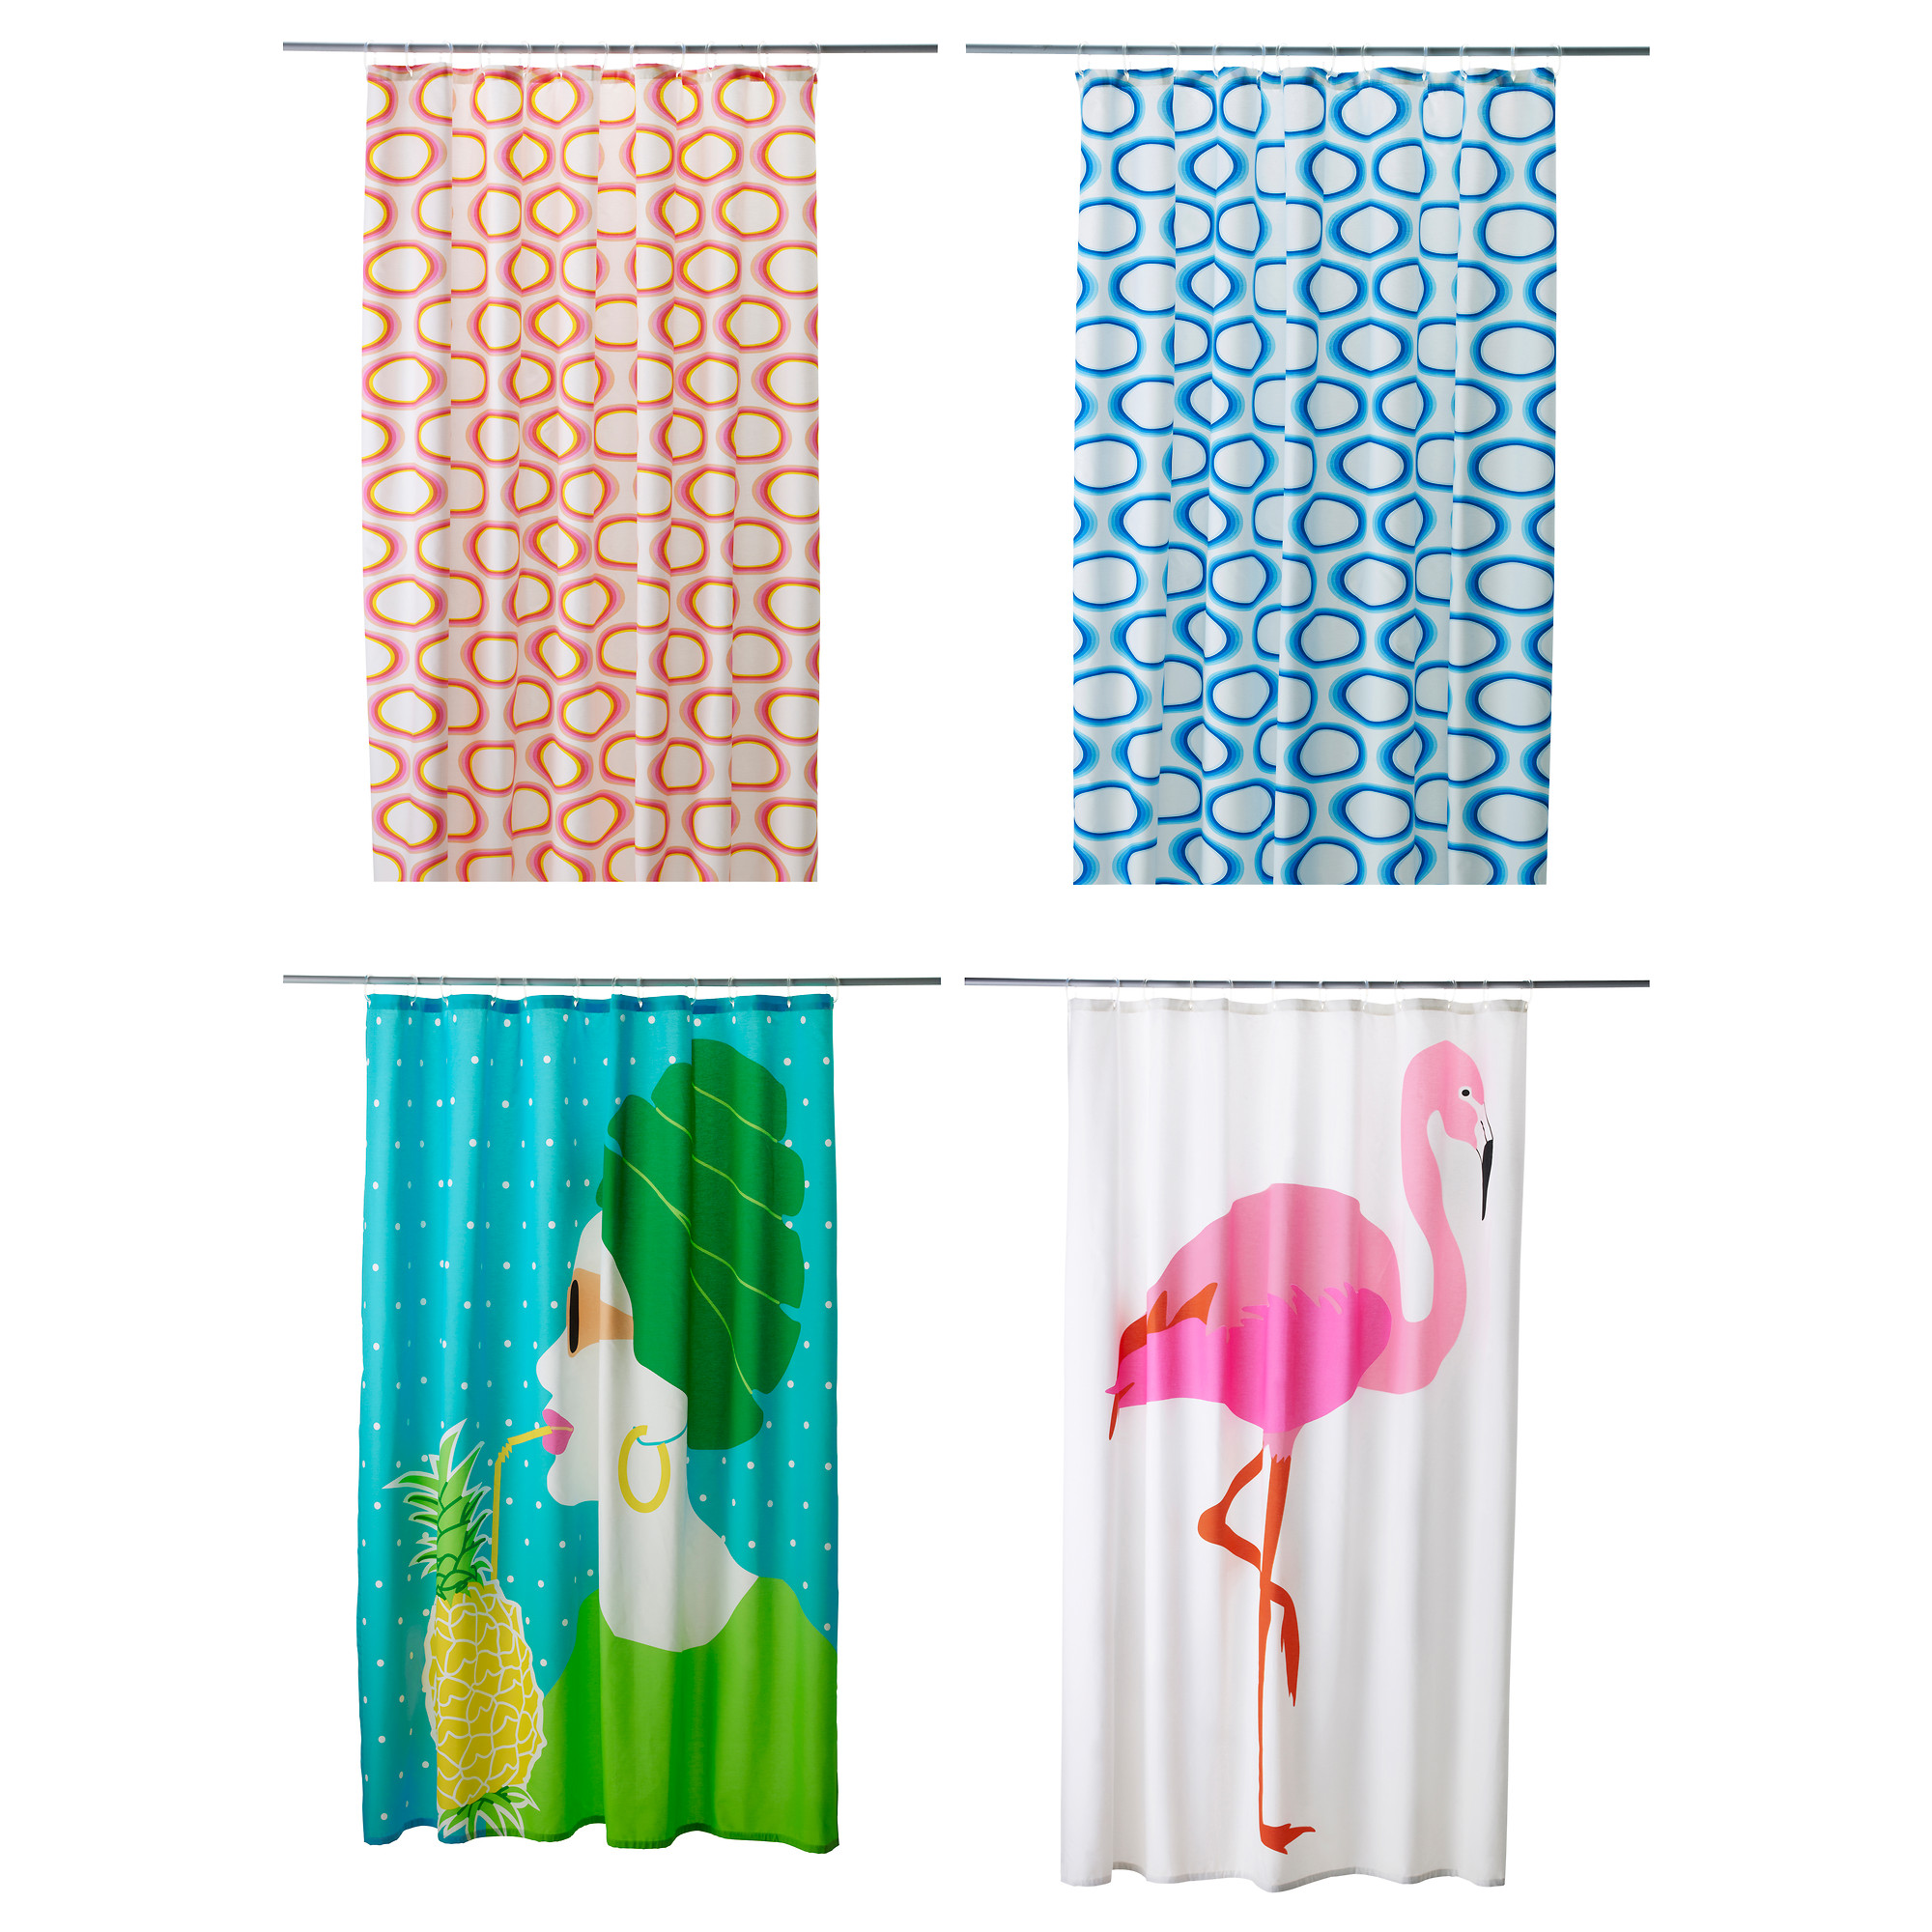 Ikea Shower Curtain for Best Your Bathroom Decoration: Ikea Shower Curtain | Stall Shower Curtains | Shower Curtain Rail